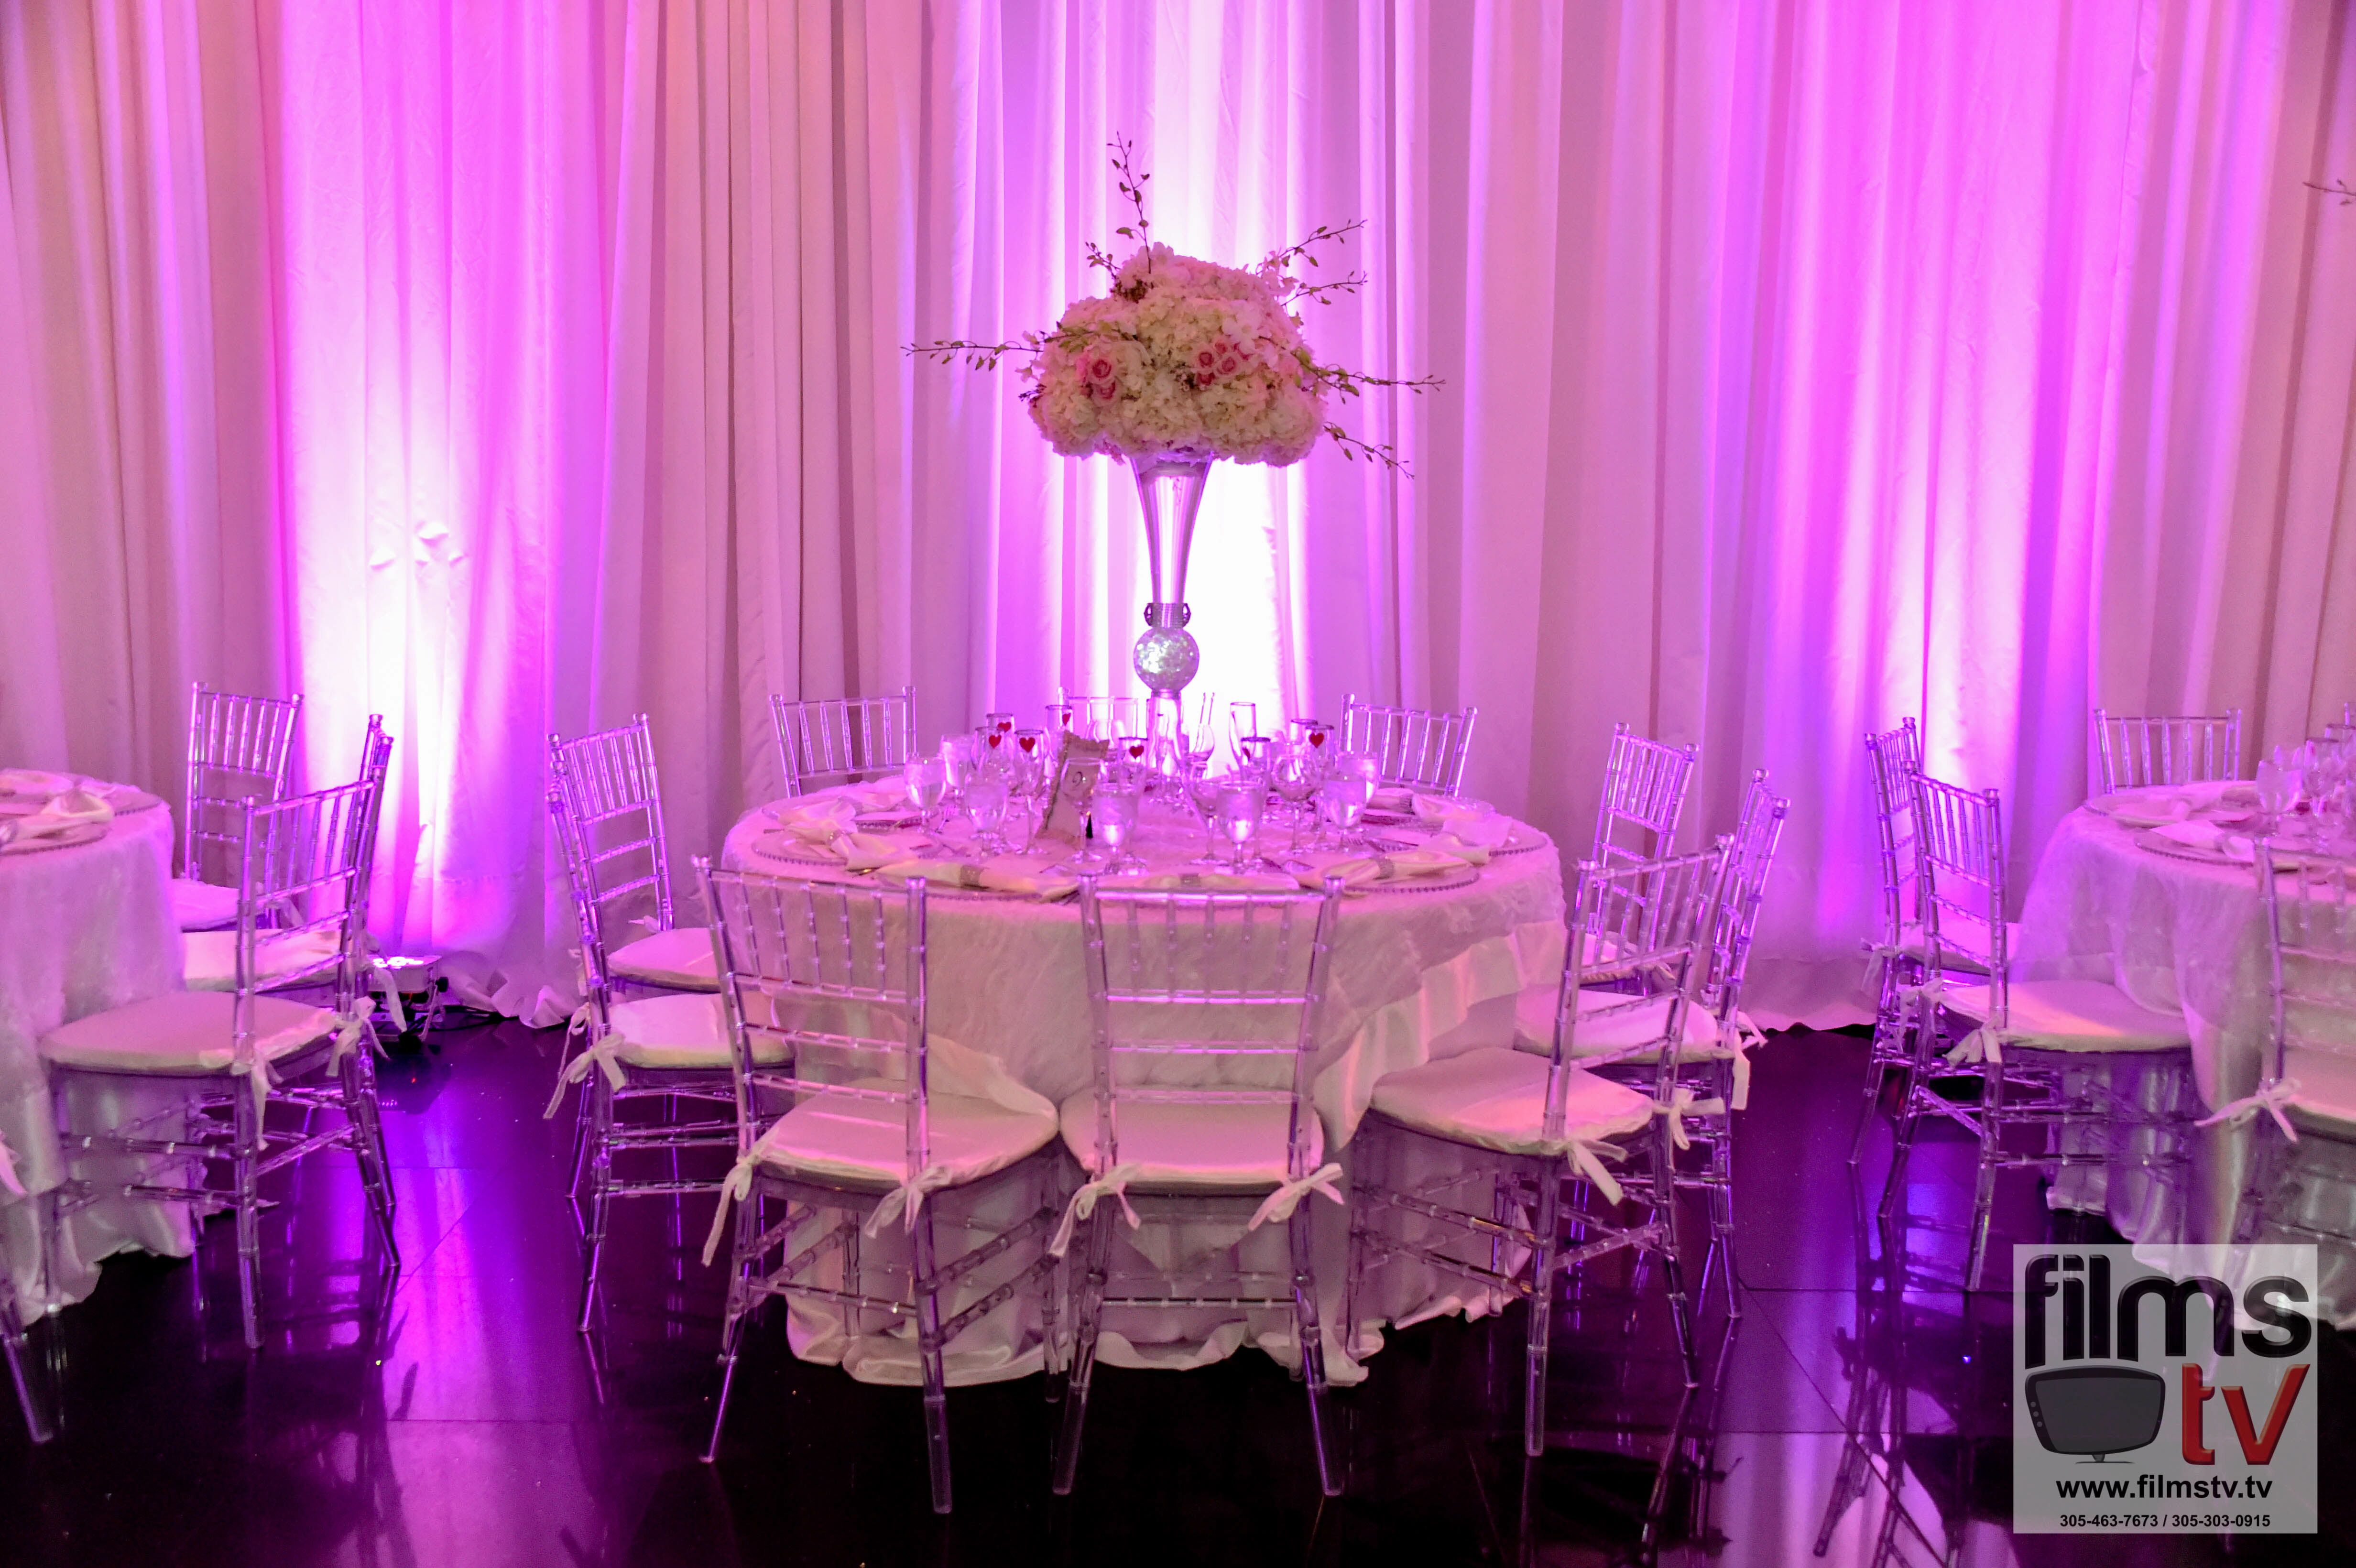 Wedding Venues in Miami, FL - The Knot